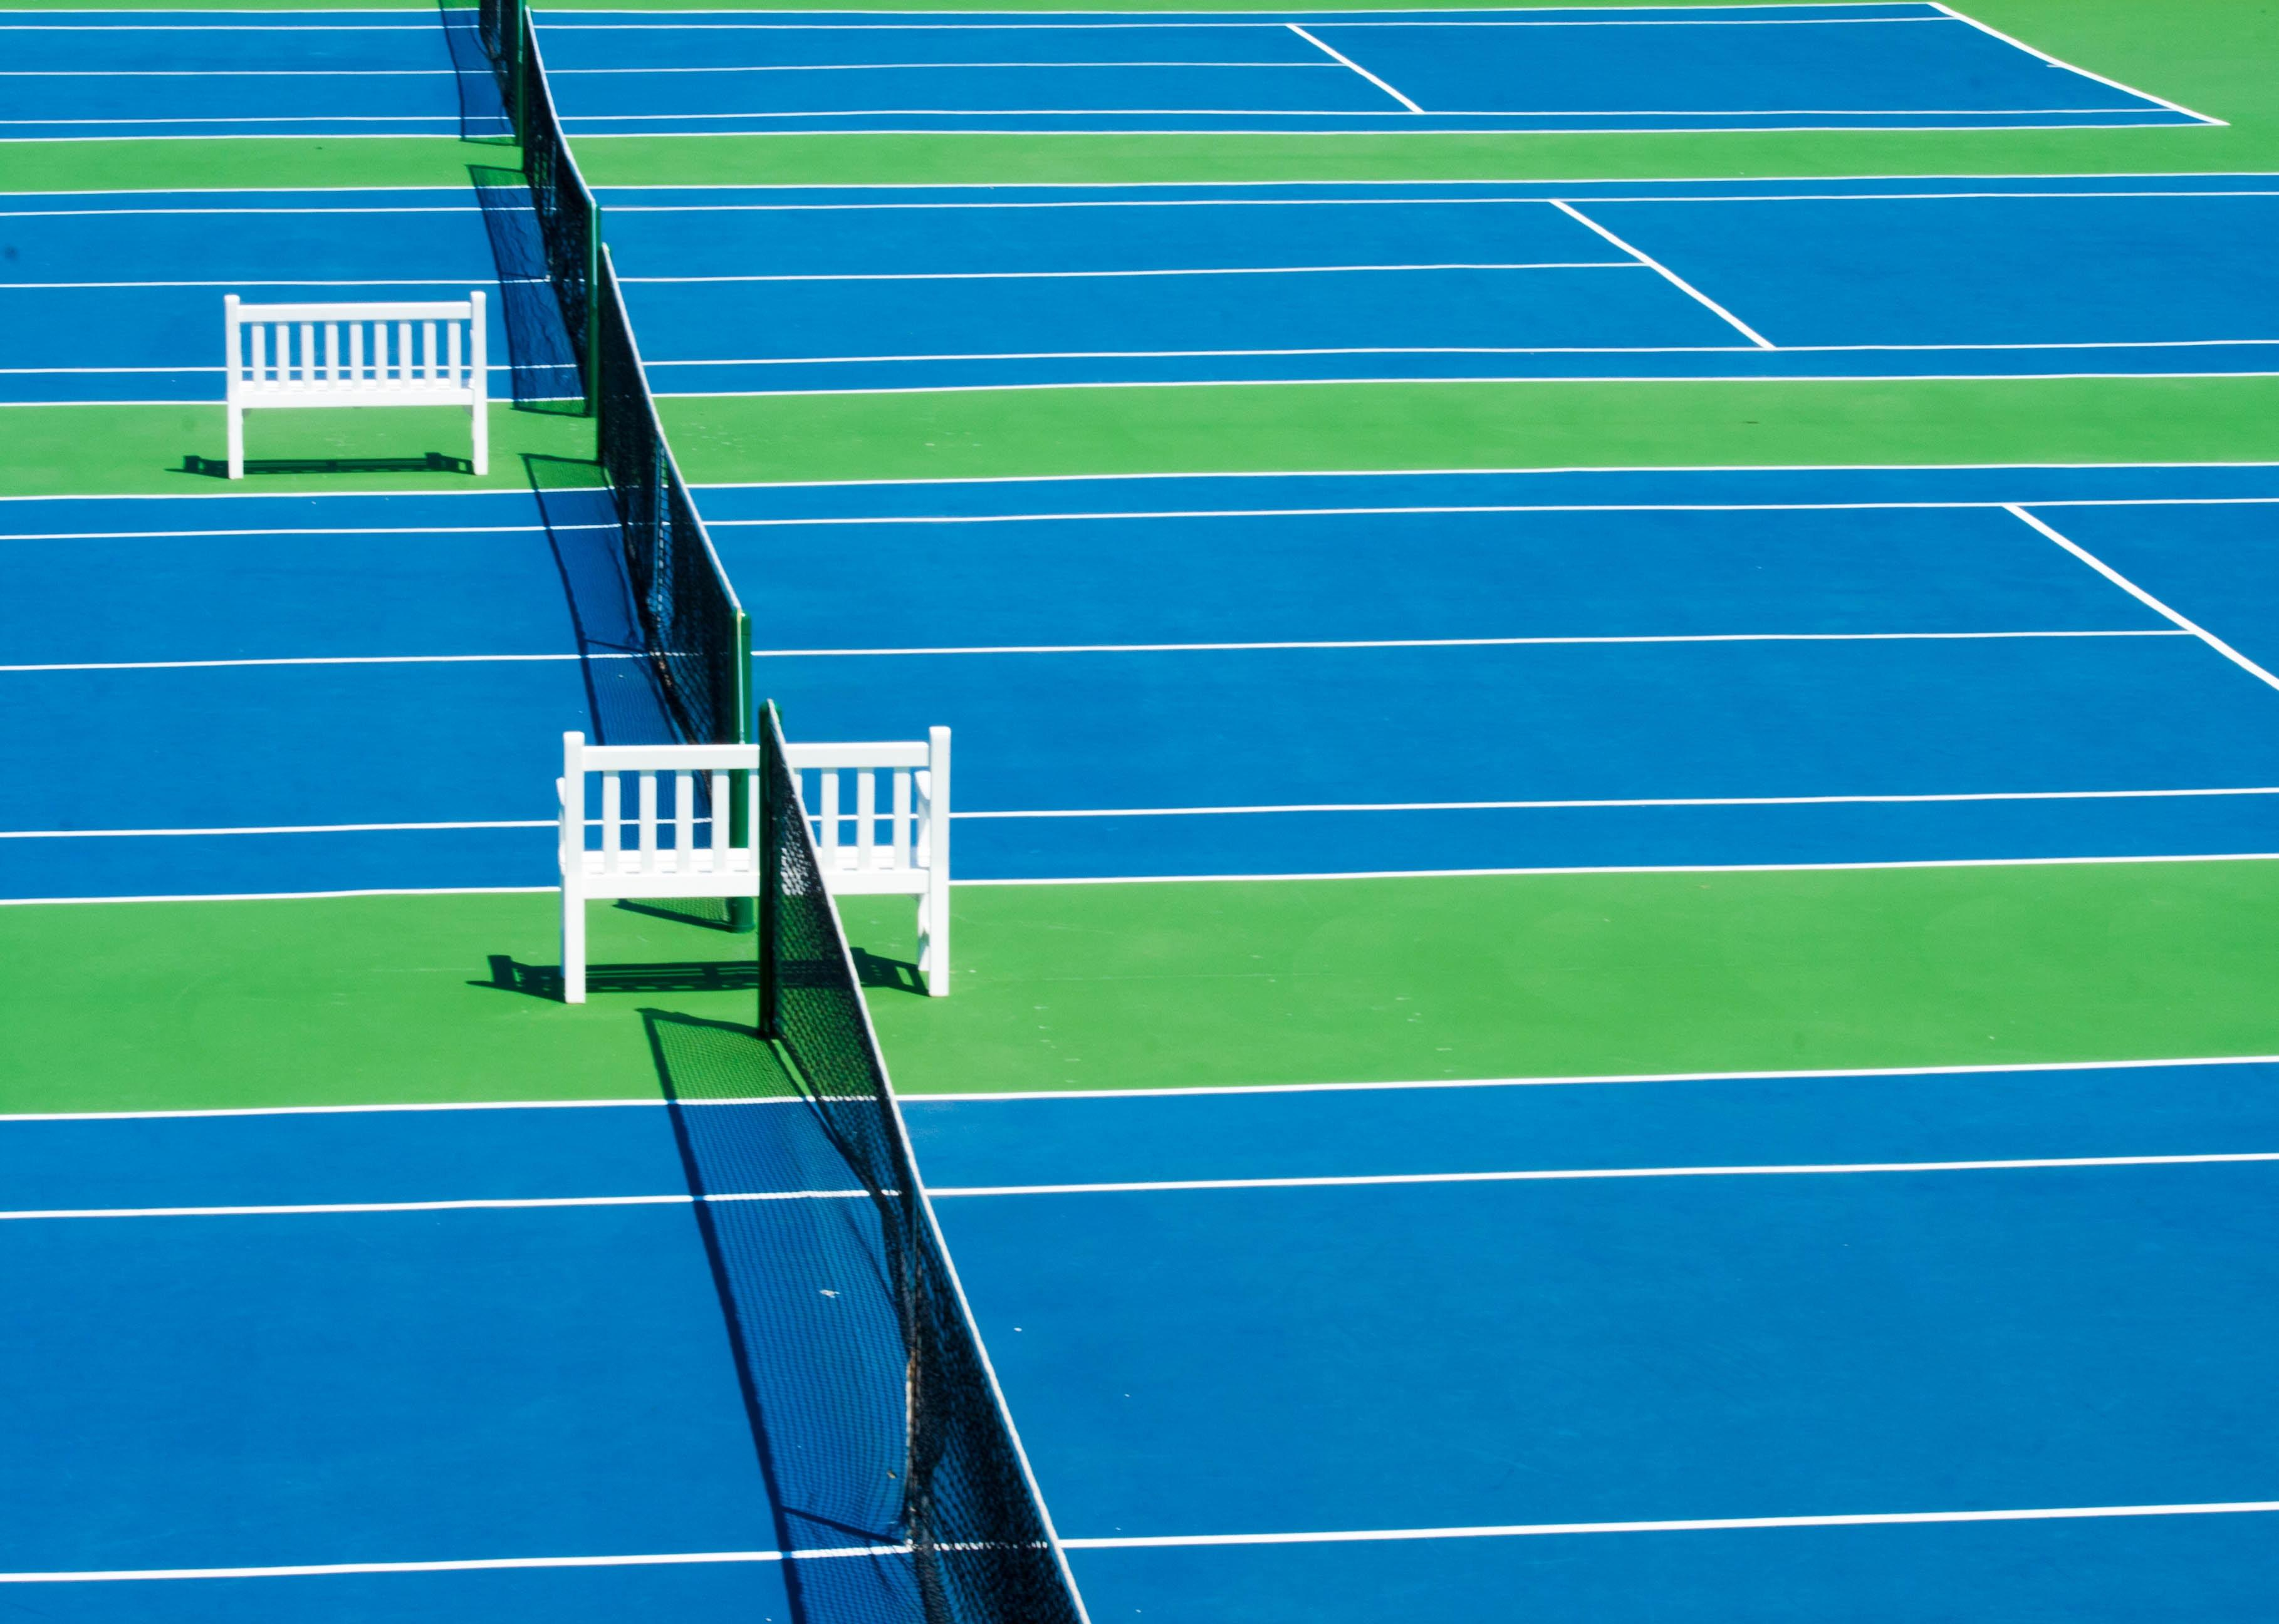 Tennis Wallpaper Iphone 30 Pictures 3086557 Hd Wallpaper Backgrounds Download